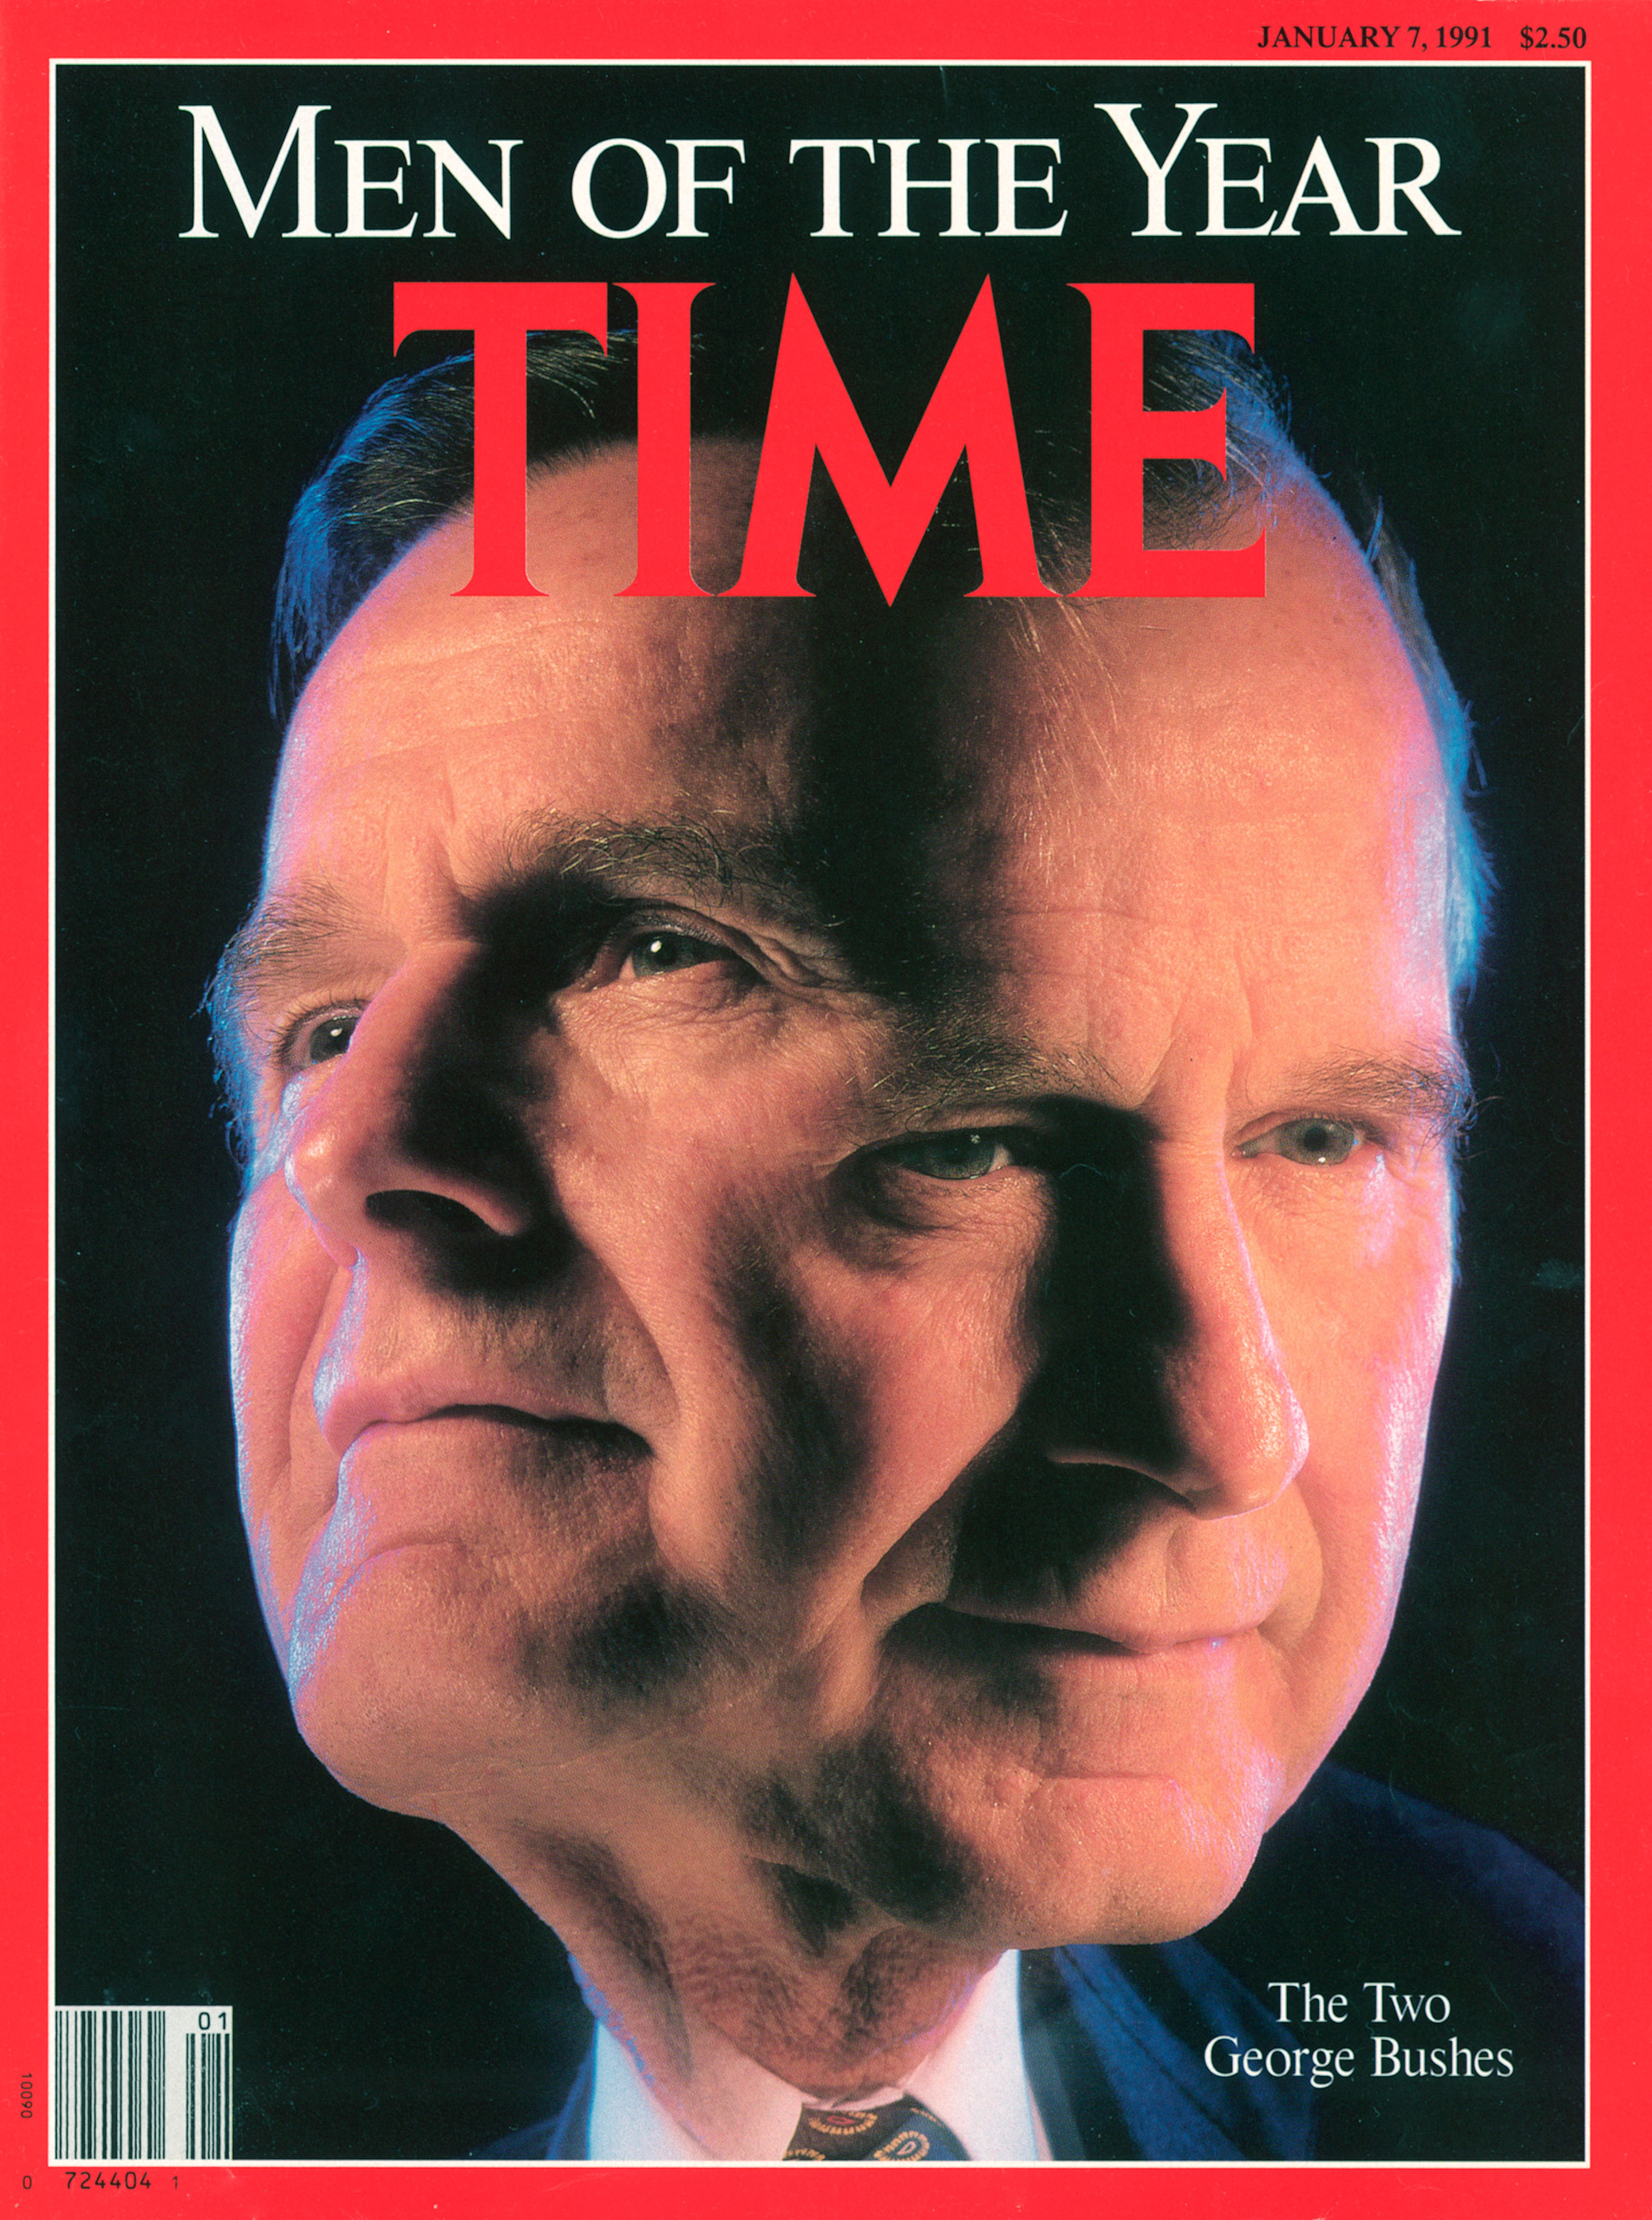 George H.W. Bush, Men of the Year, on the Jan. 7, 1991, cover of TIME. Cover photo by Gregory Heisler.